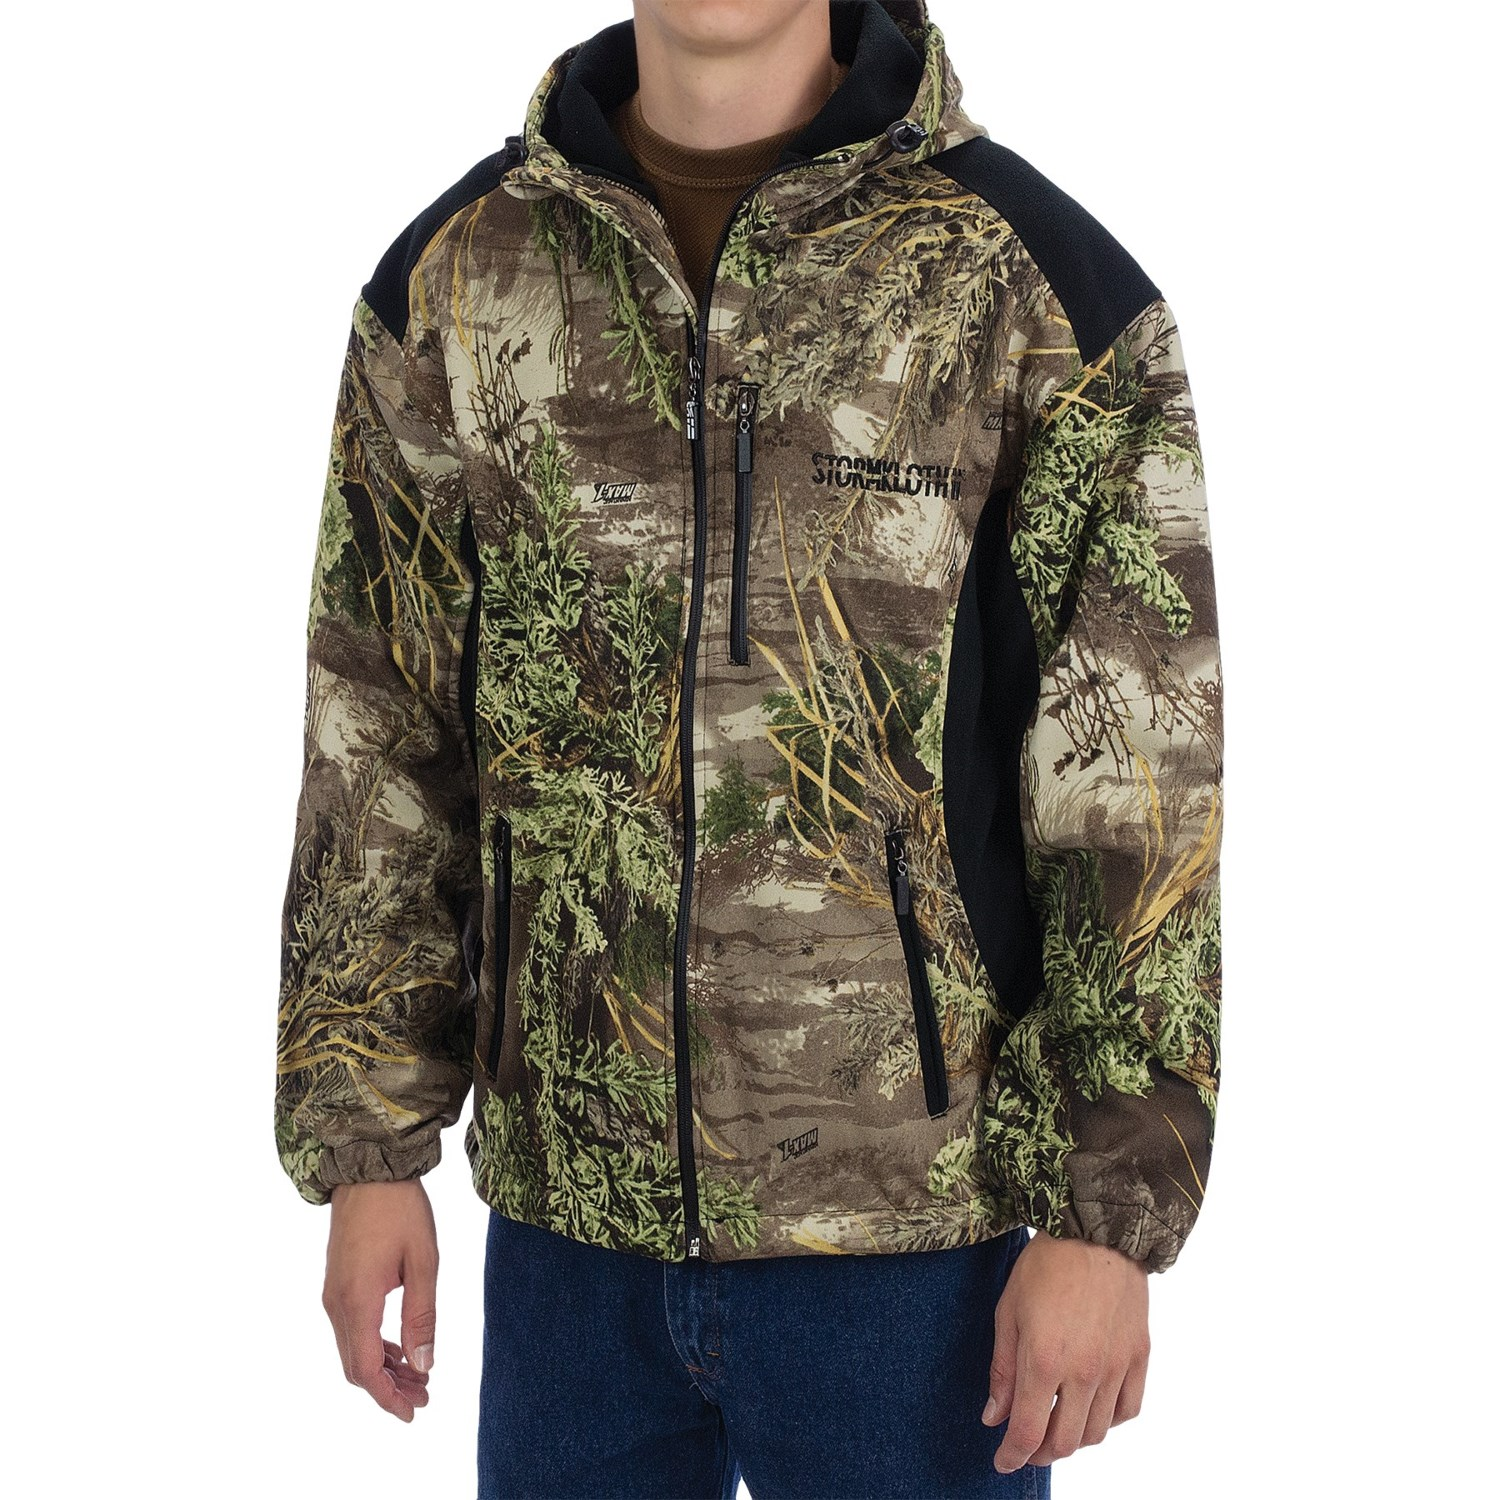 Hunting Jacket Australia Hunting Jacket For Men